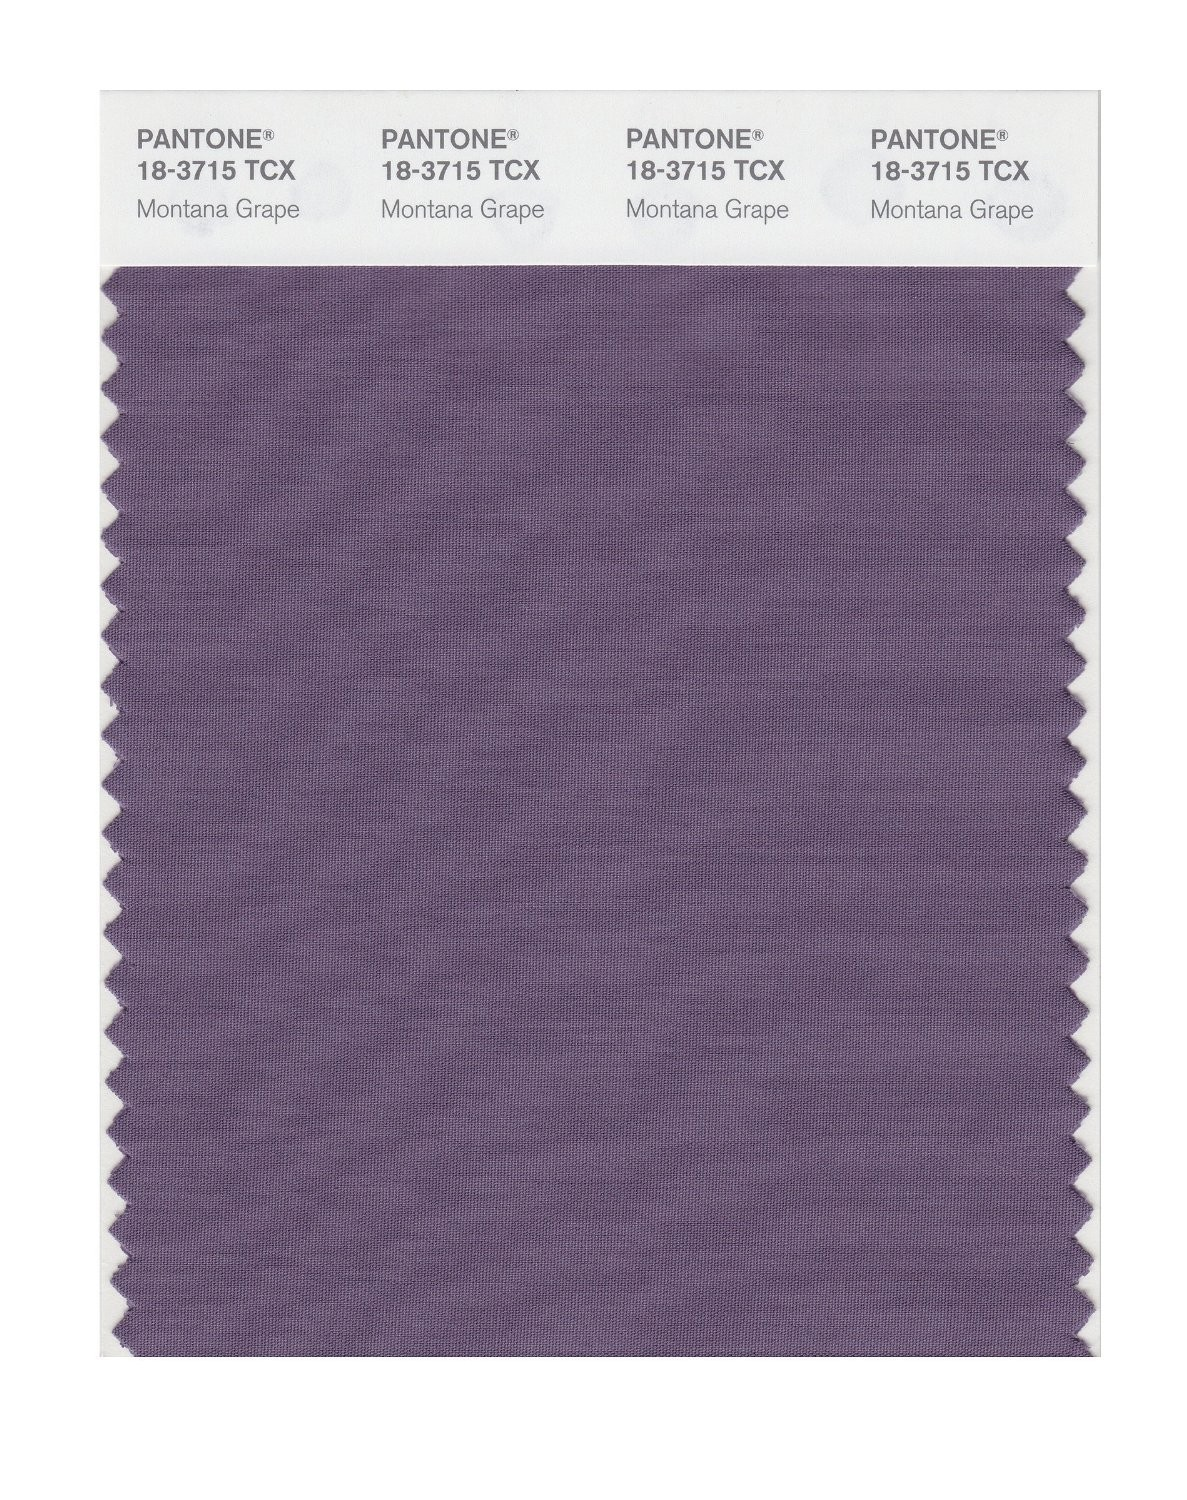 Pantone 18-3715 TCX Swatch Card Montana Grape